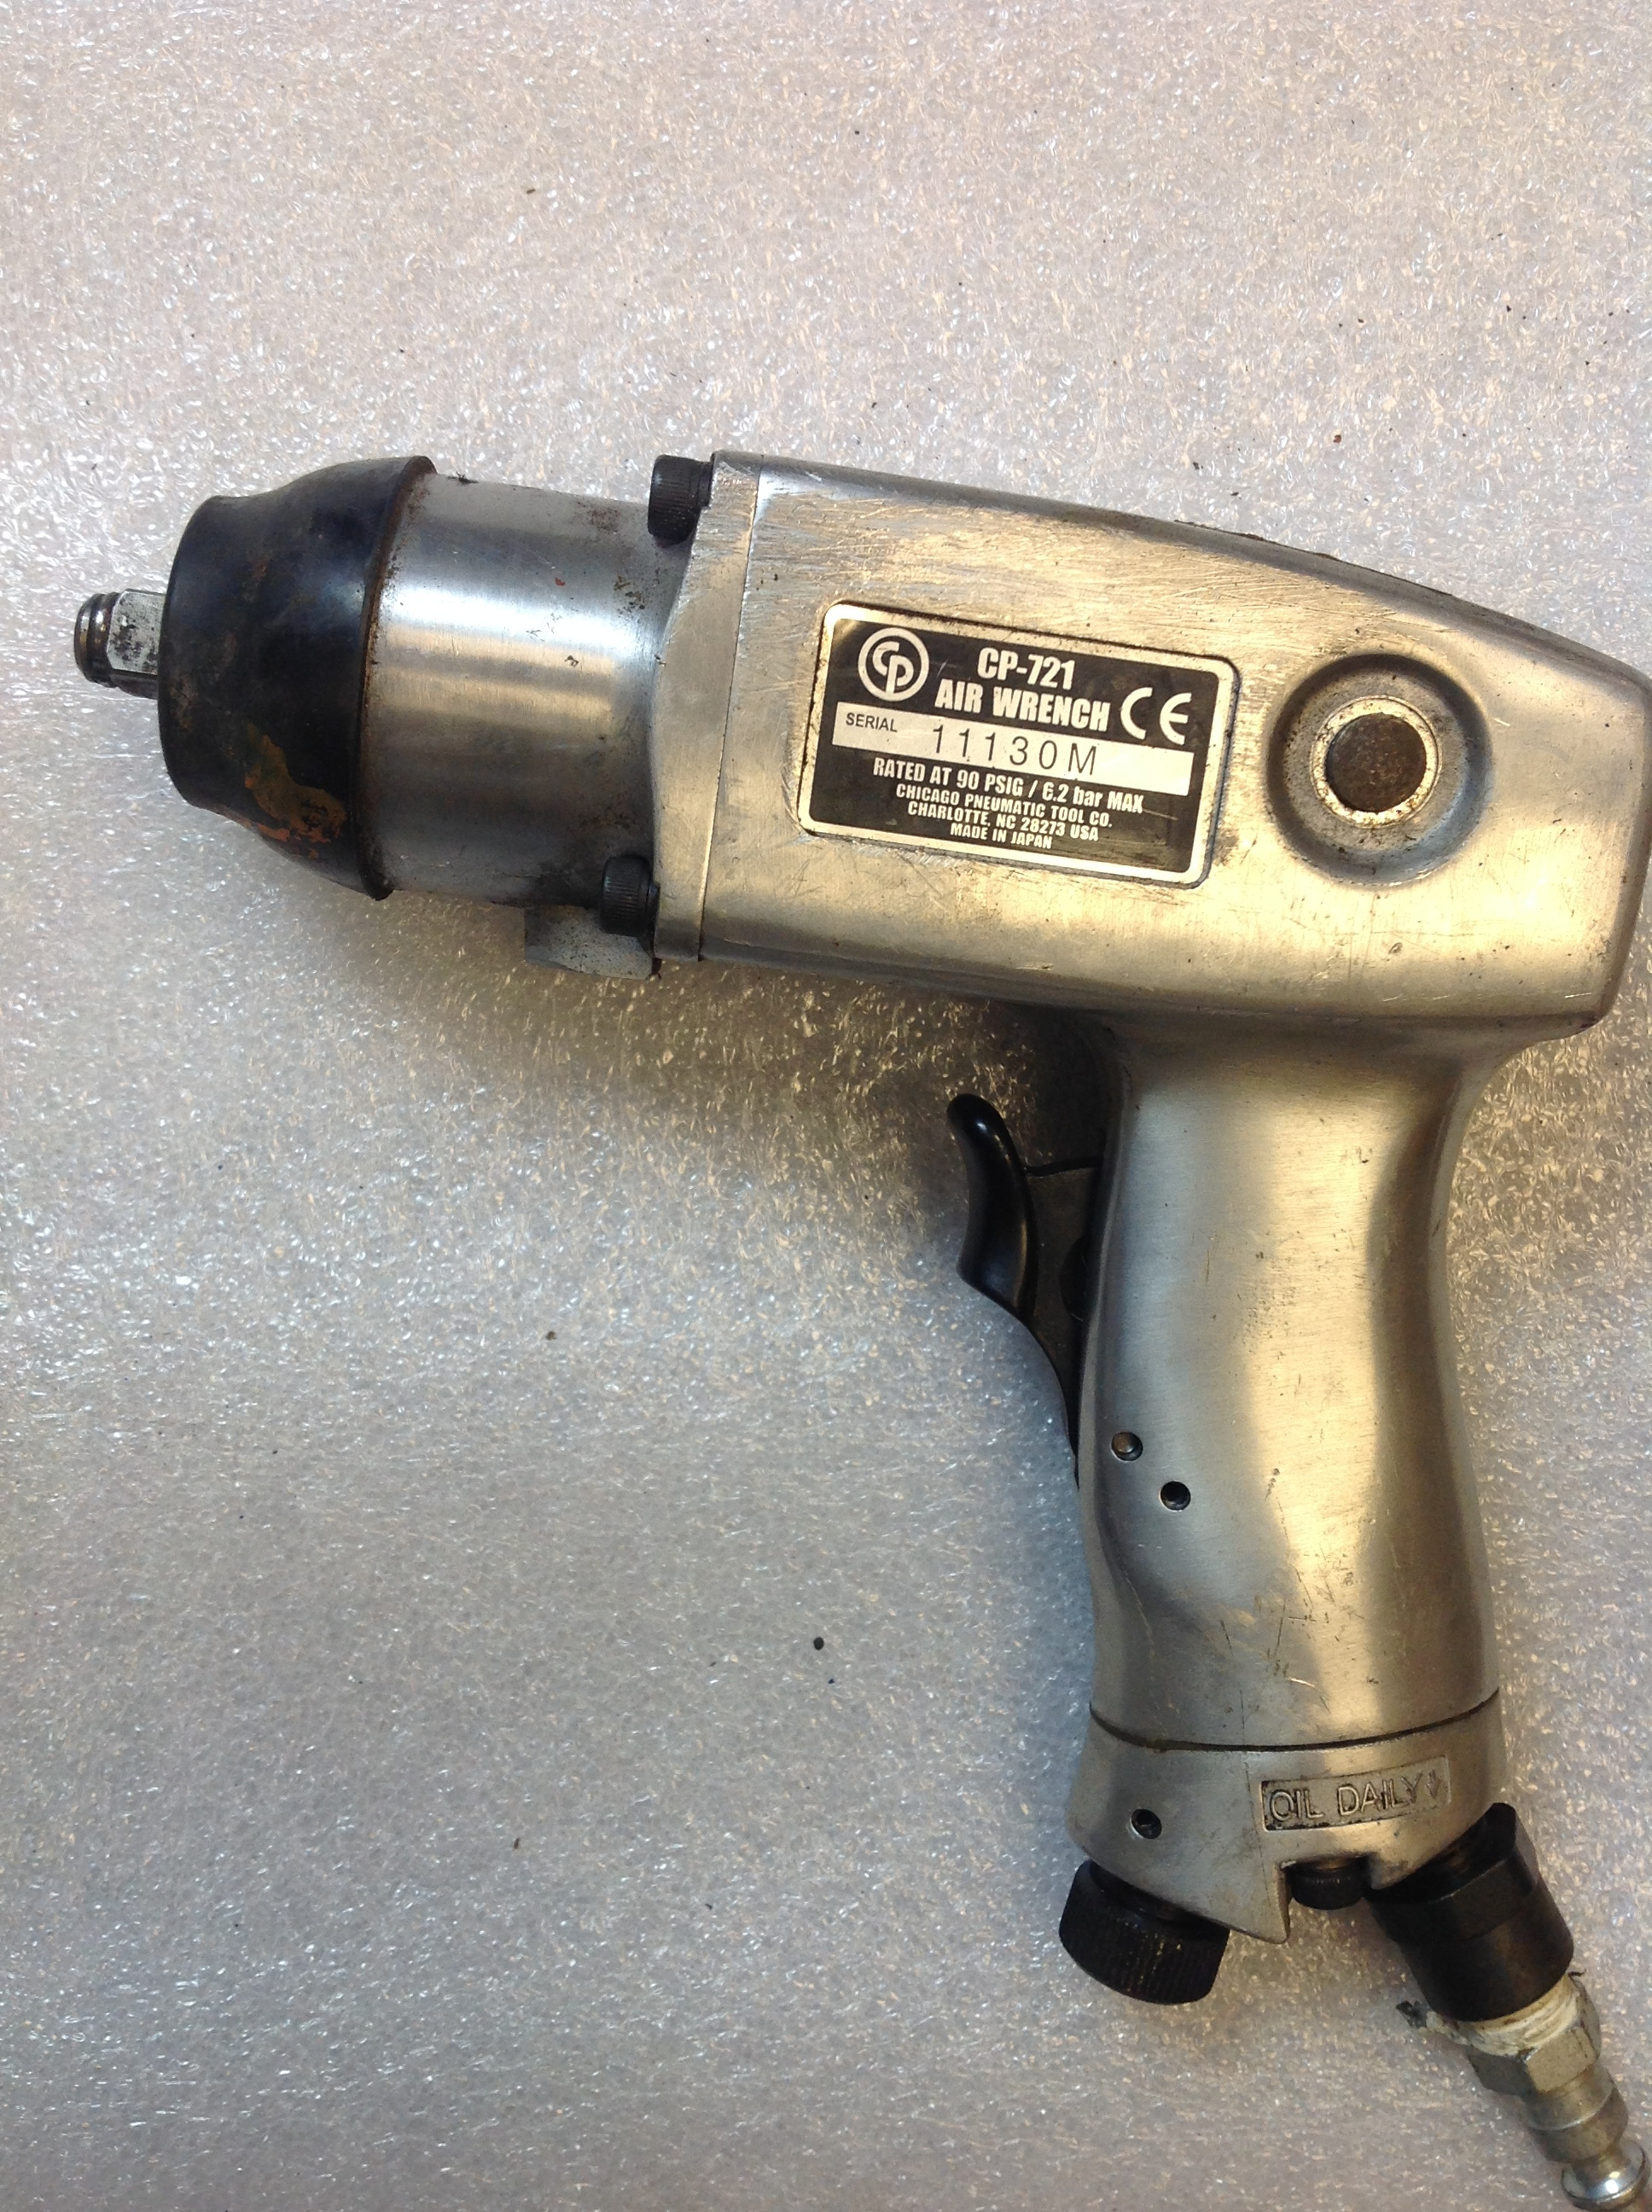 CHICAGO PNEUMATIC 721 AIR WRENCH